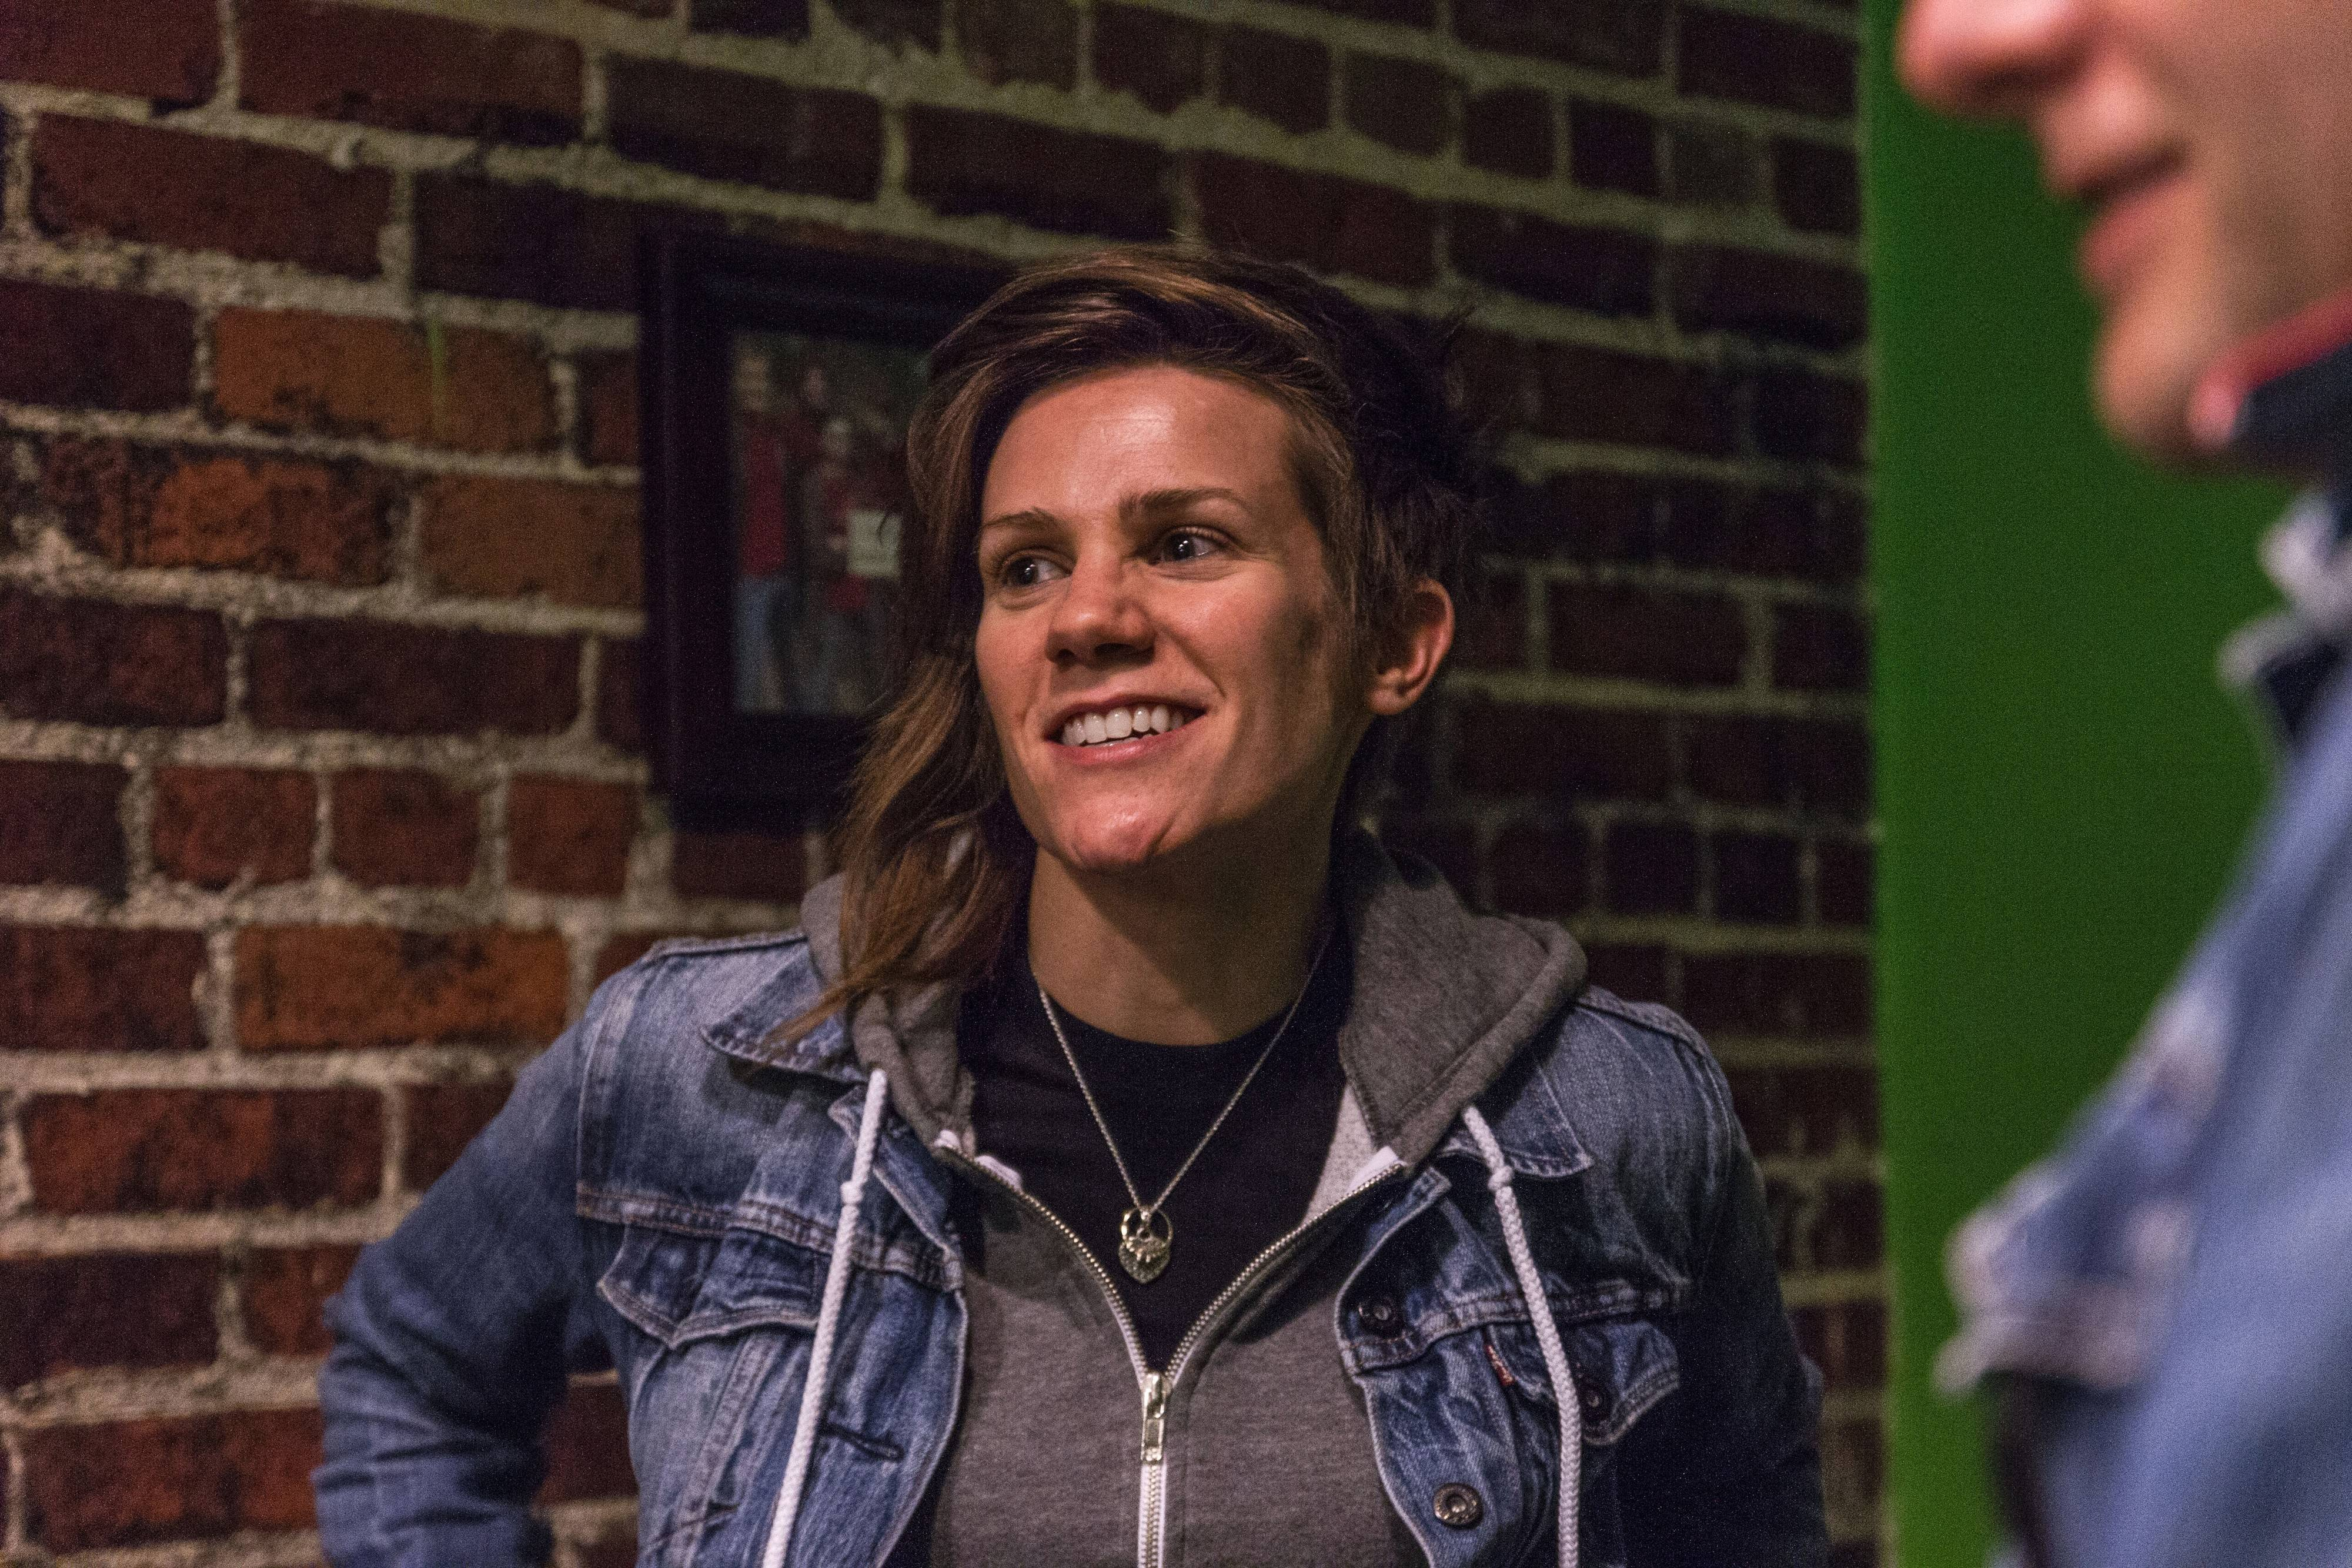 Comedian Cameron Esposito, of Western Springs, talks about her funny suburban childhood in her stand-up act.